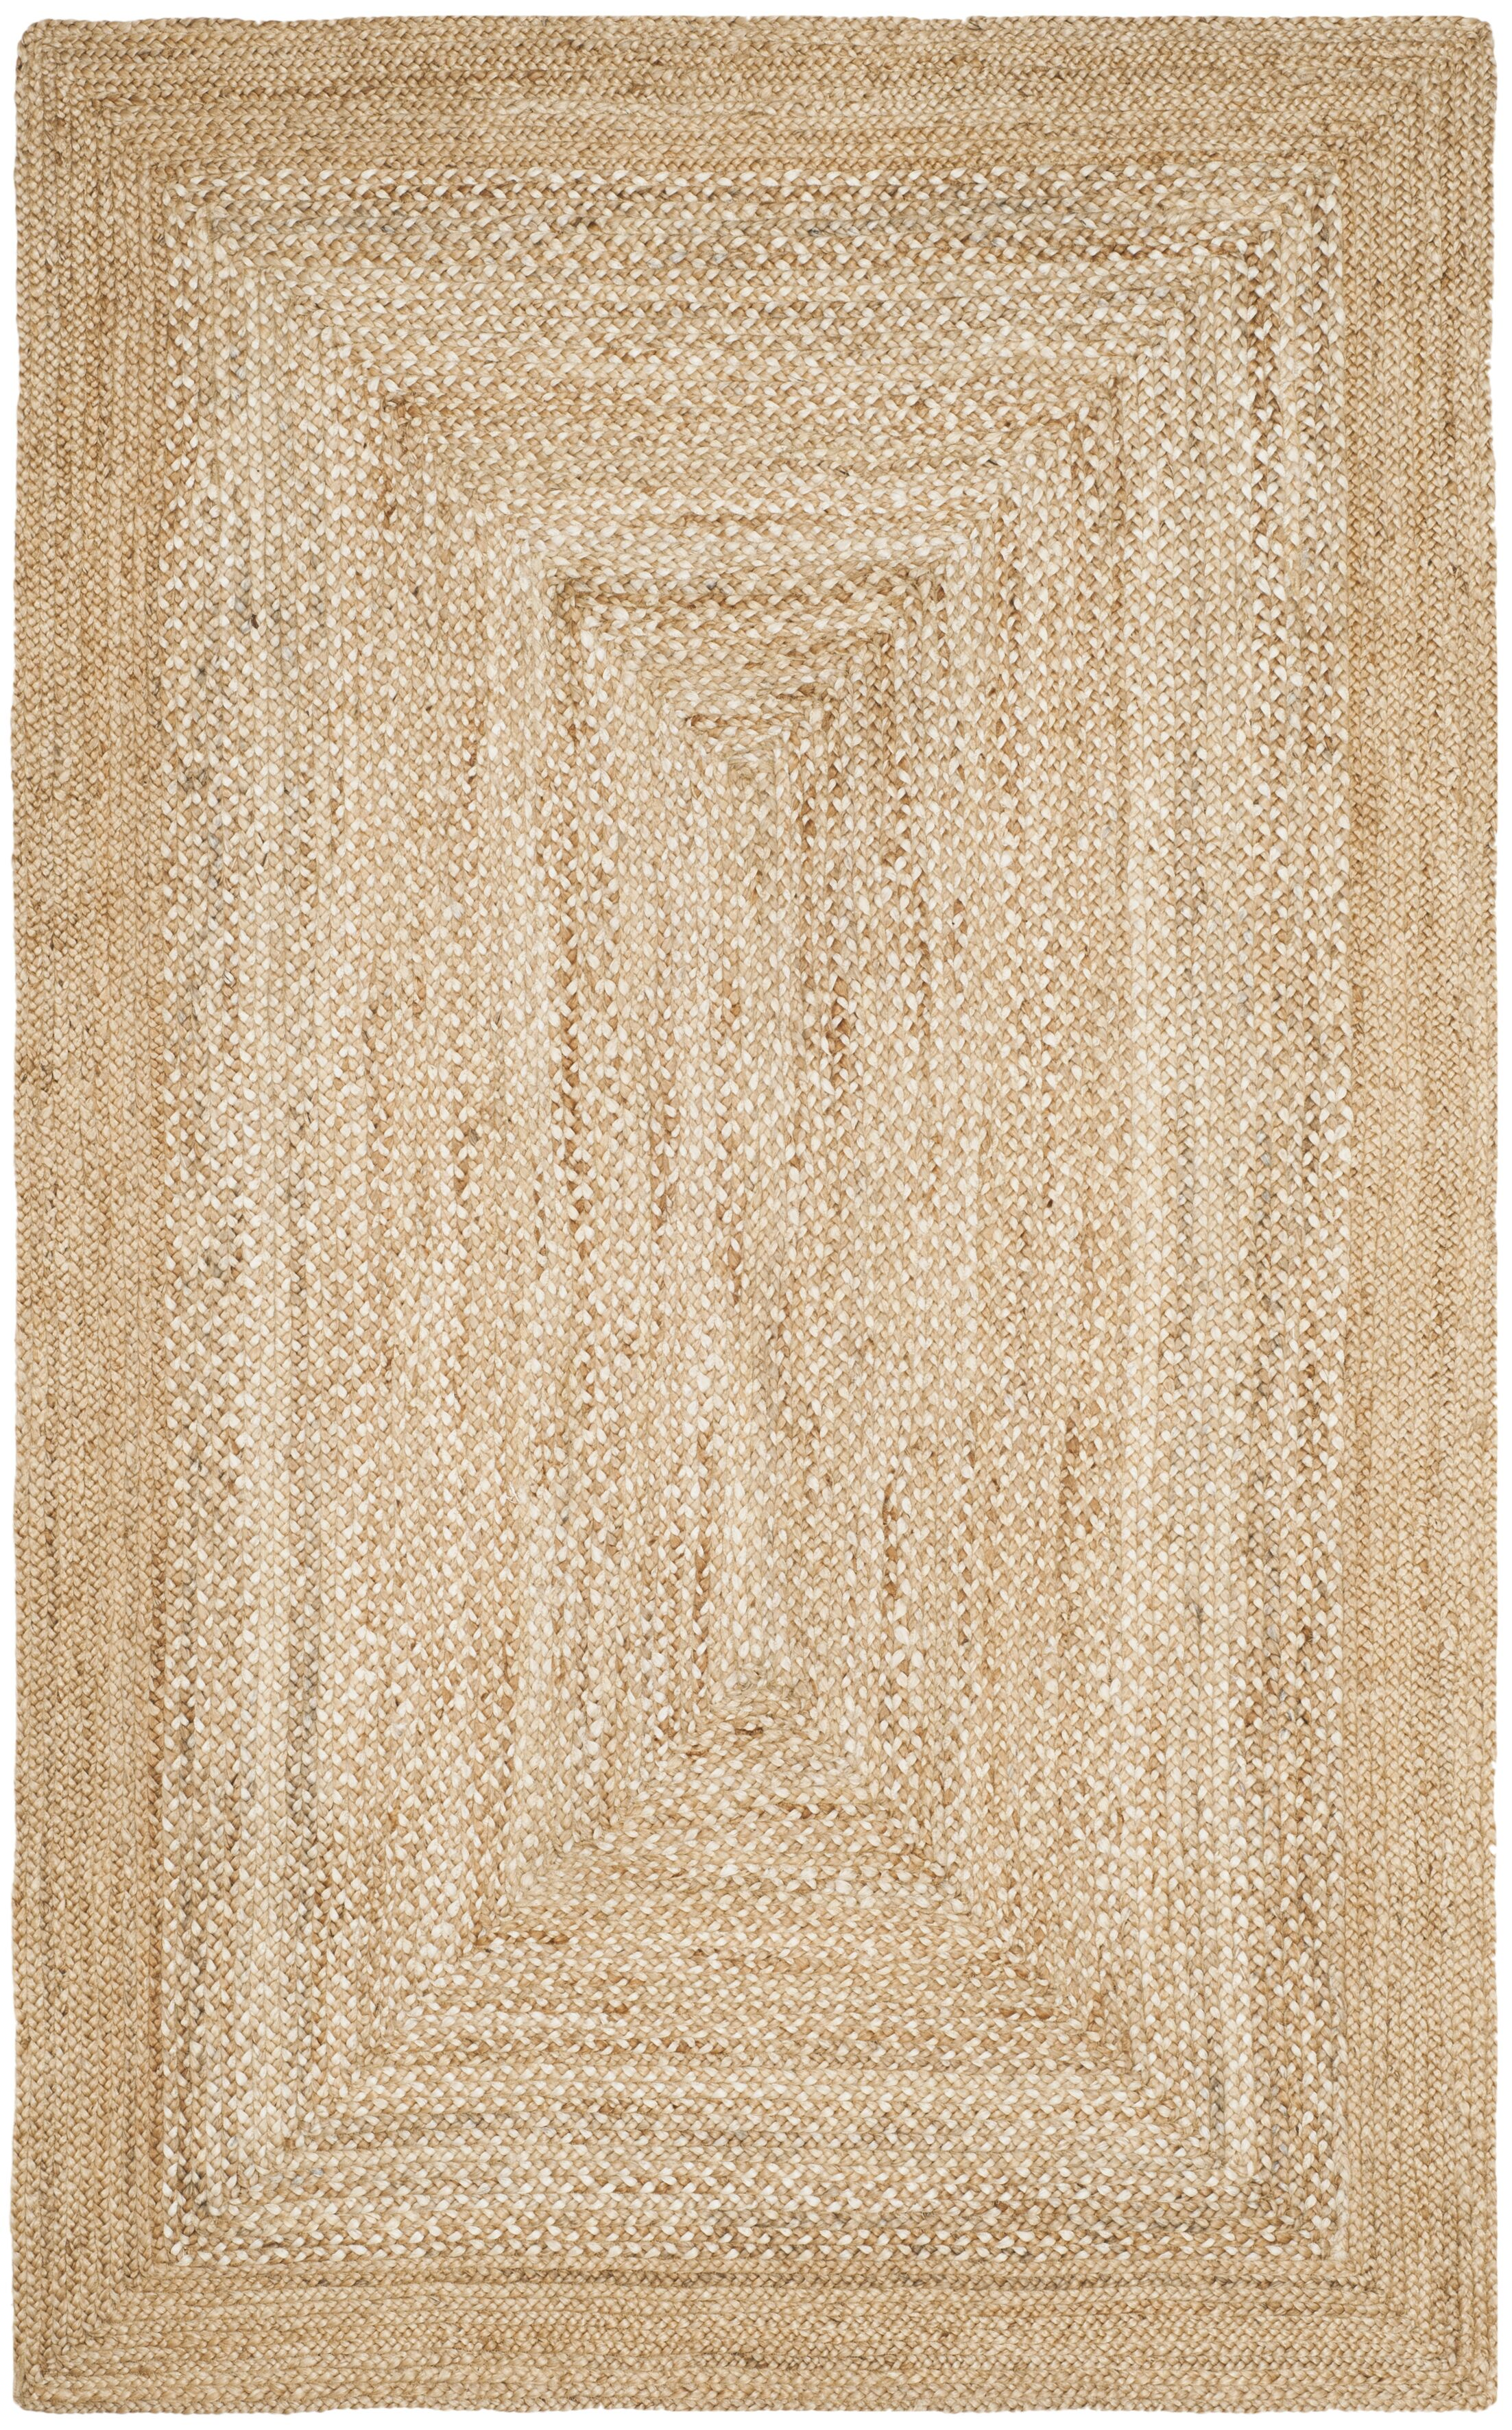 Marie Natural Fiber Hand Hooked Natural Area Rug Rug Size: Rectangle 5' x 8'